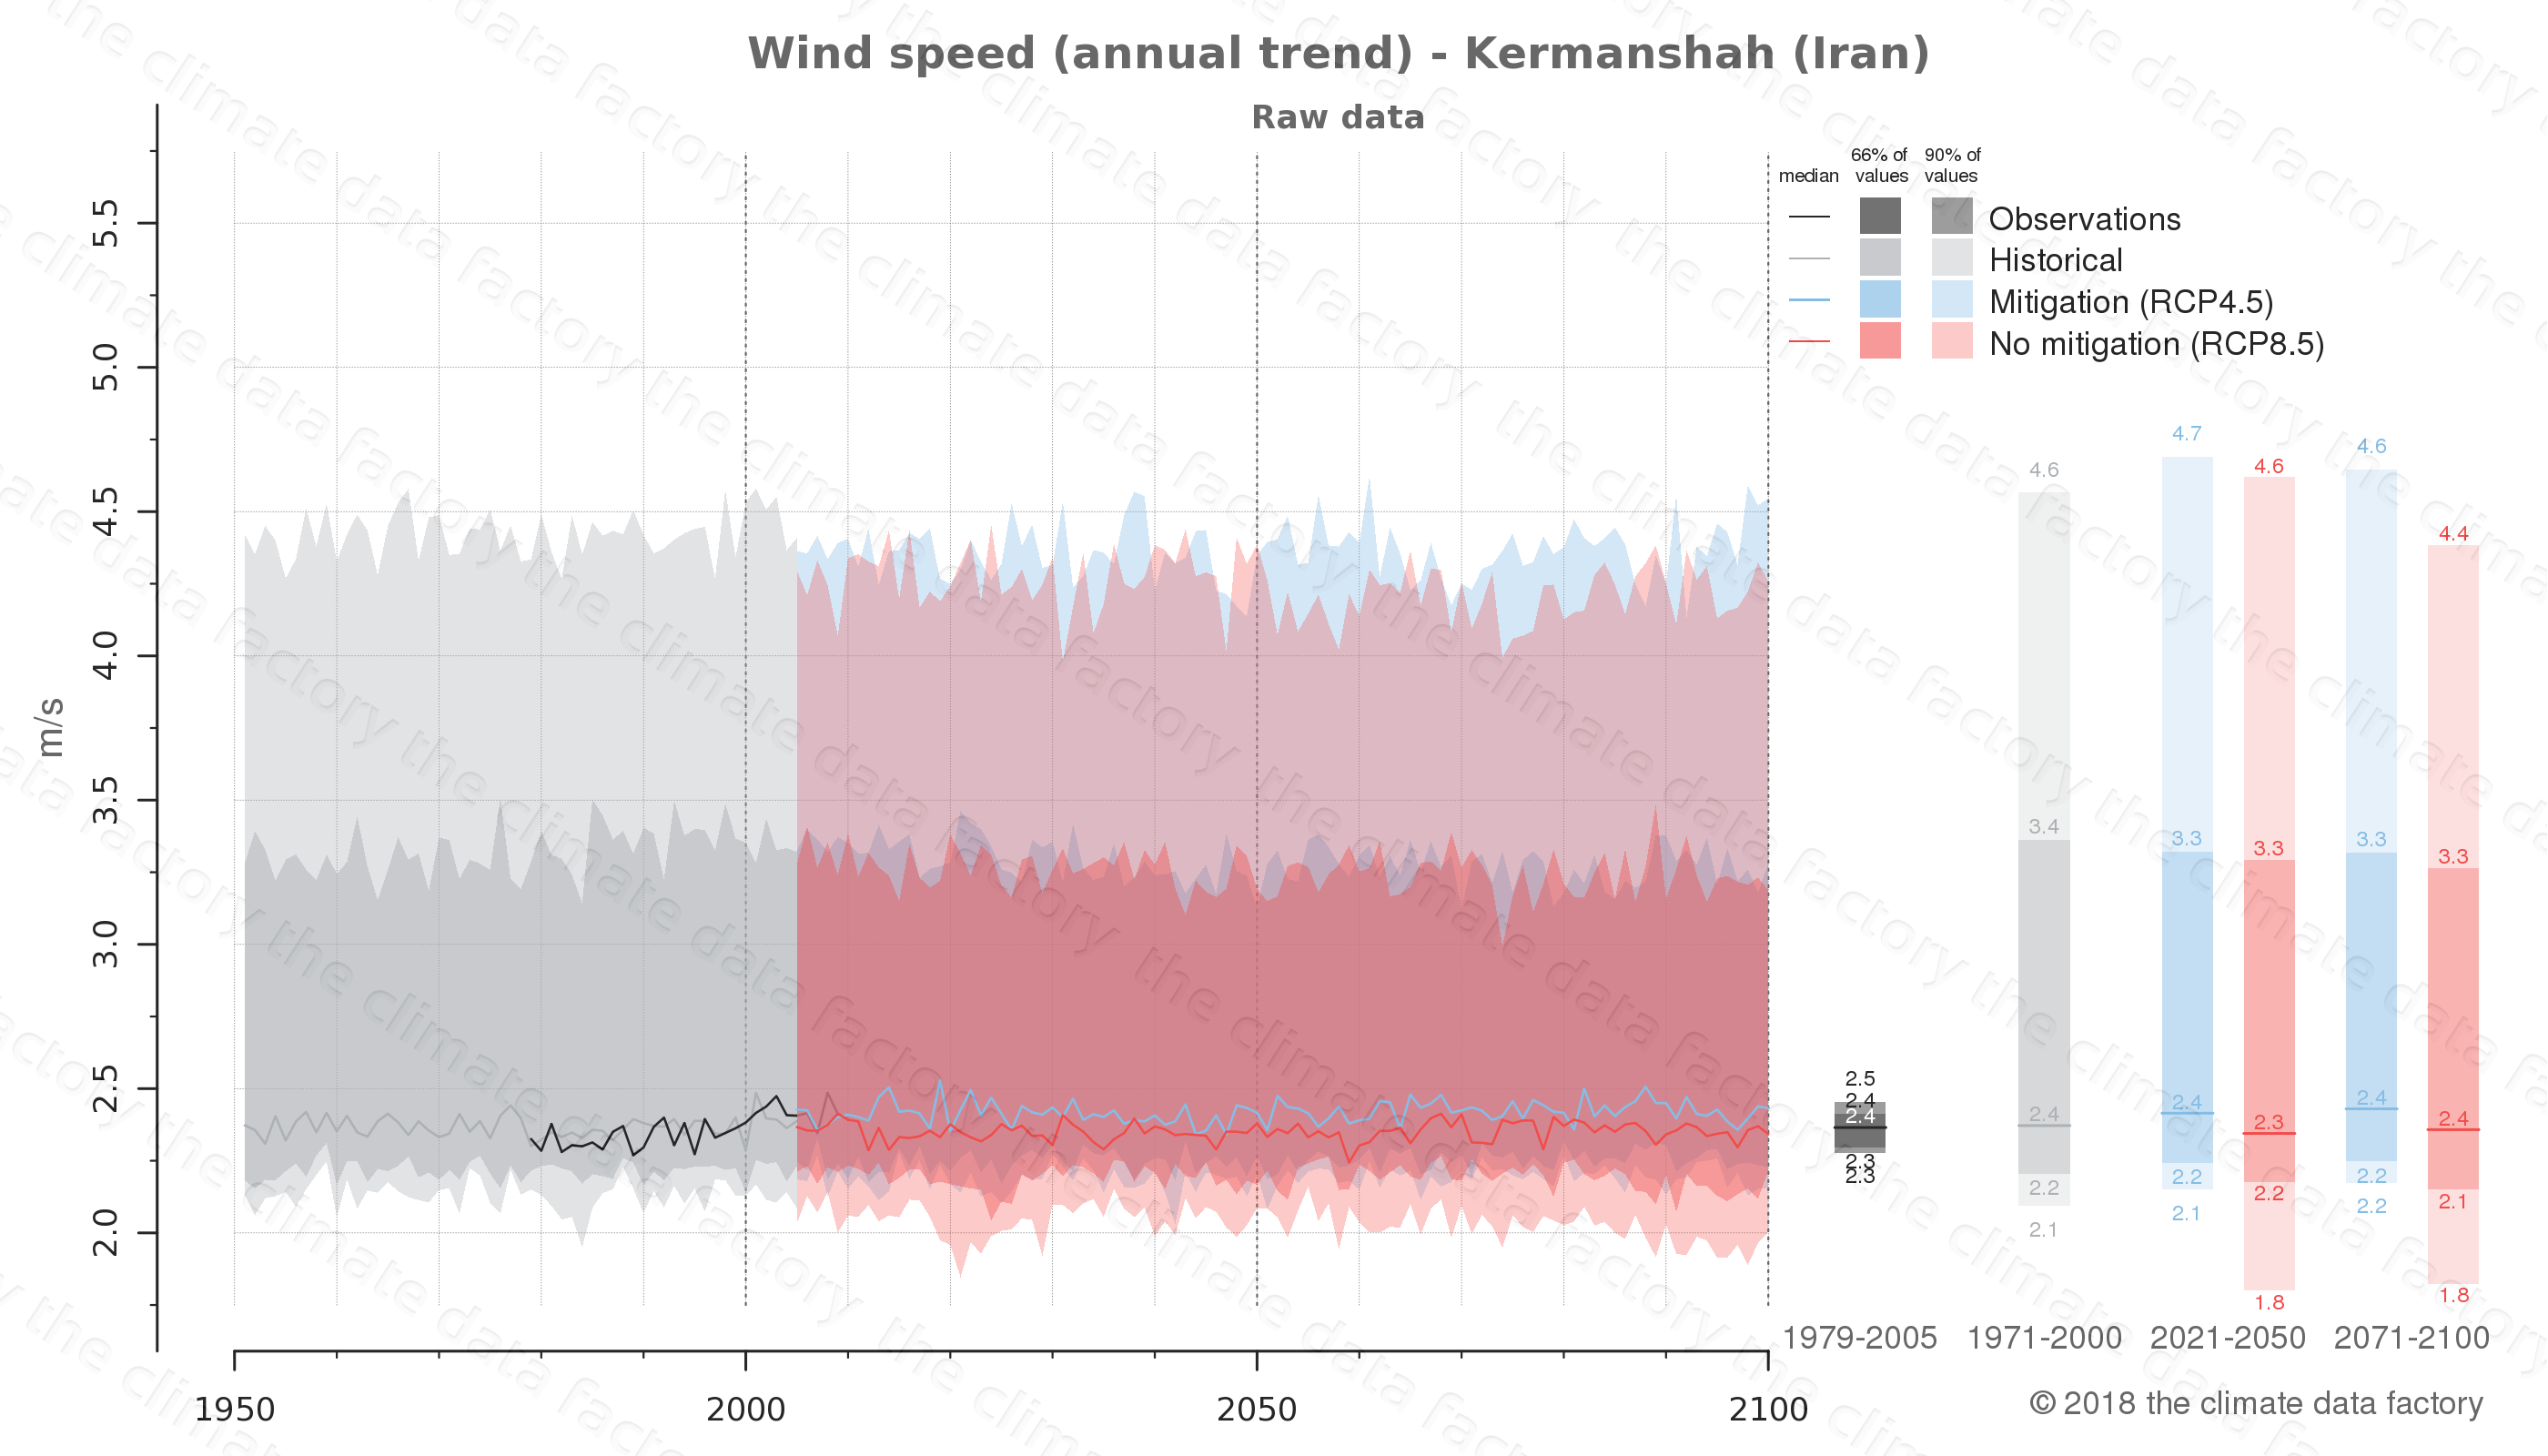 climate change data policy adaptation climate graph city data wind-speed kermanshah iran